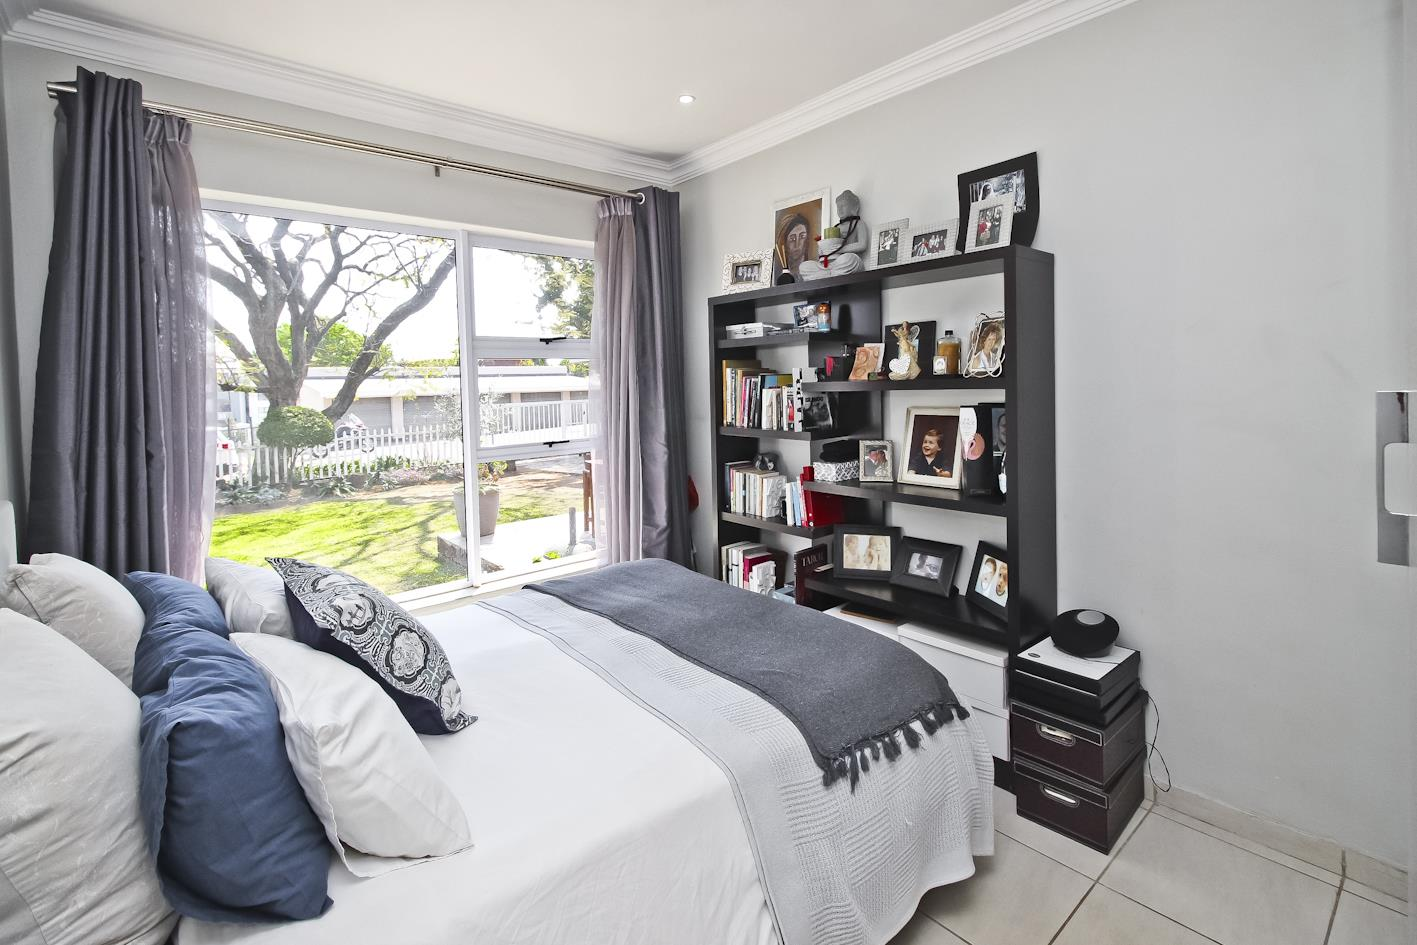 2 Bedroom House For Sale in Lakeside